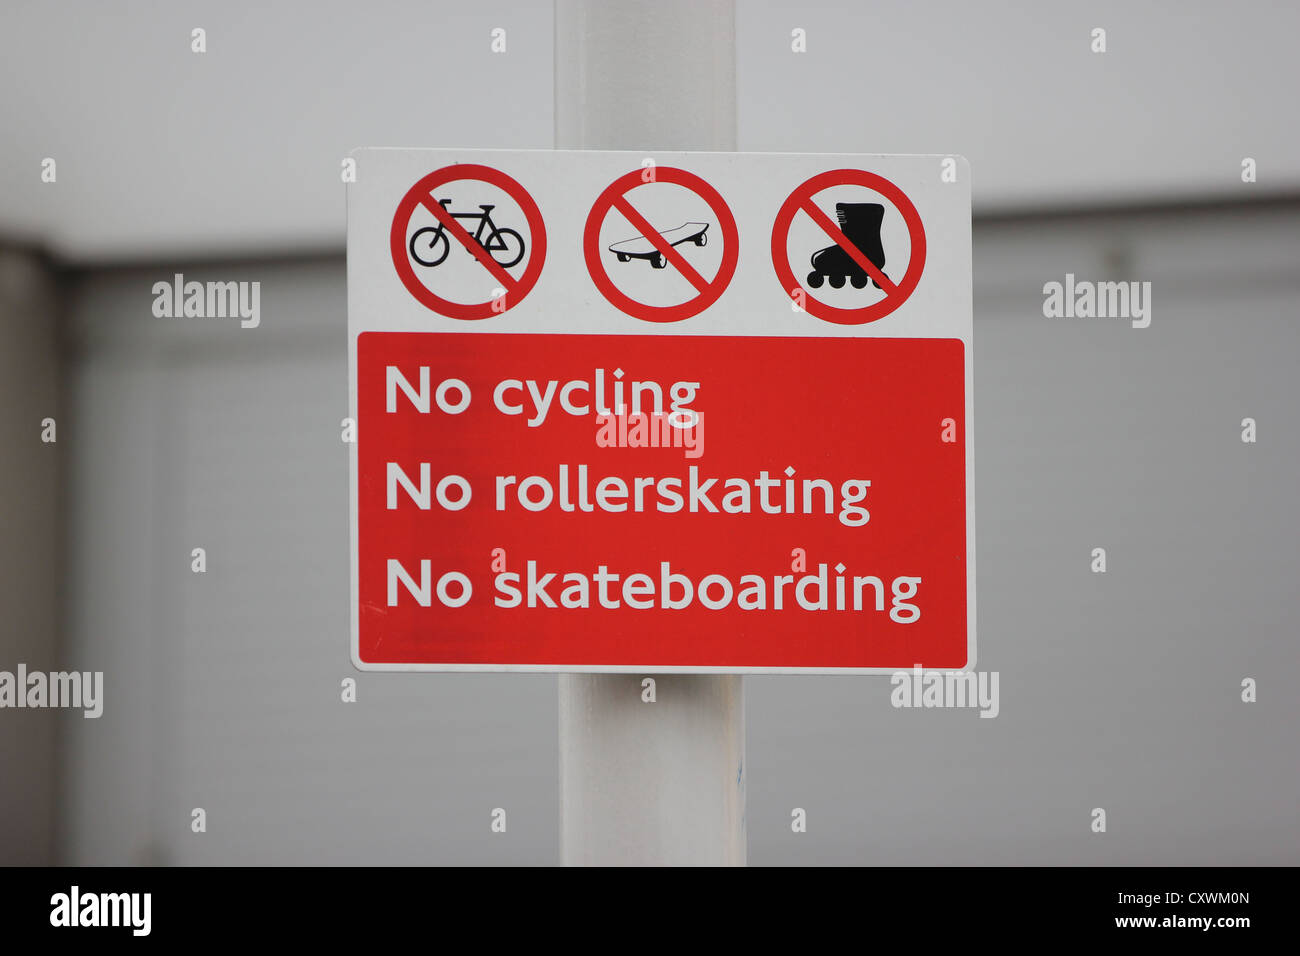 Sign on blurred background, no cycling, no rollerskating, no skateboarding, street sign, photoarkive - Stock Image